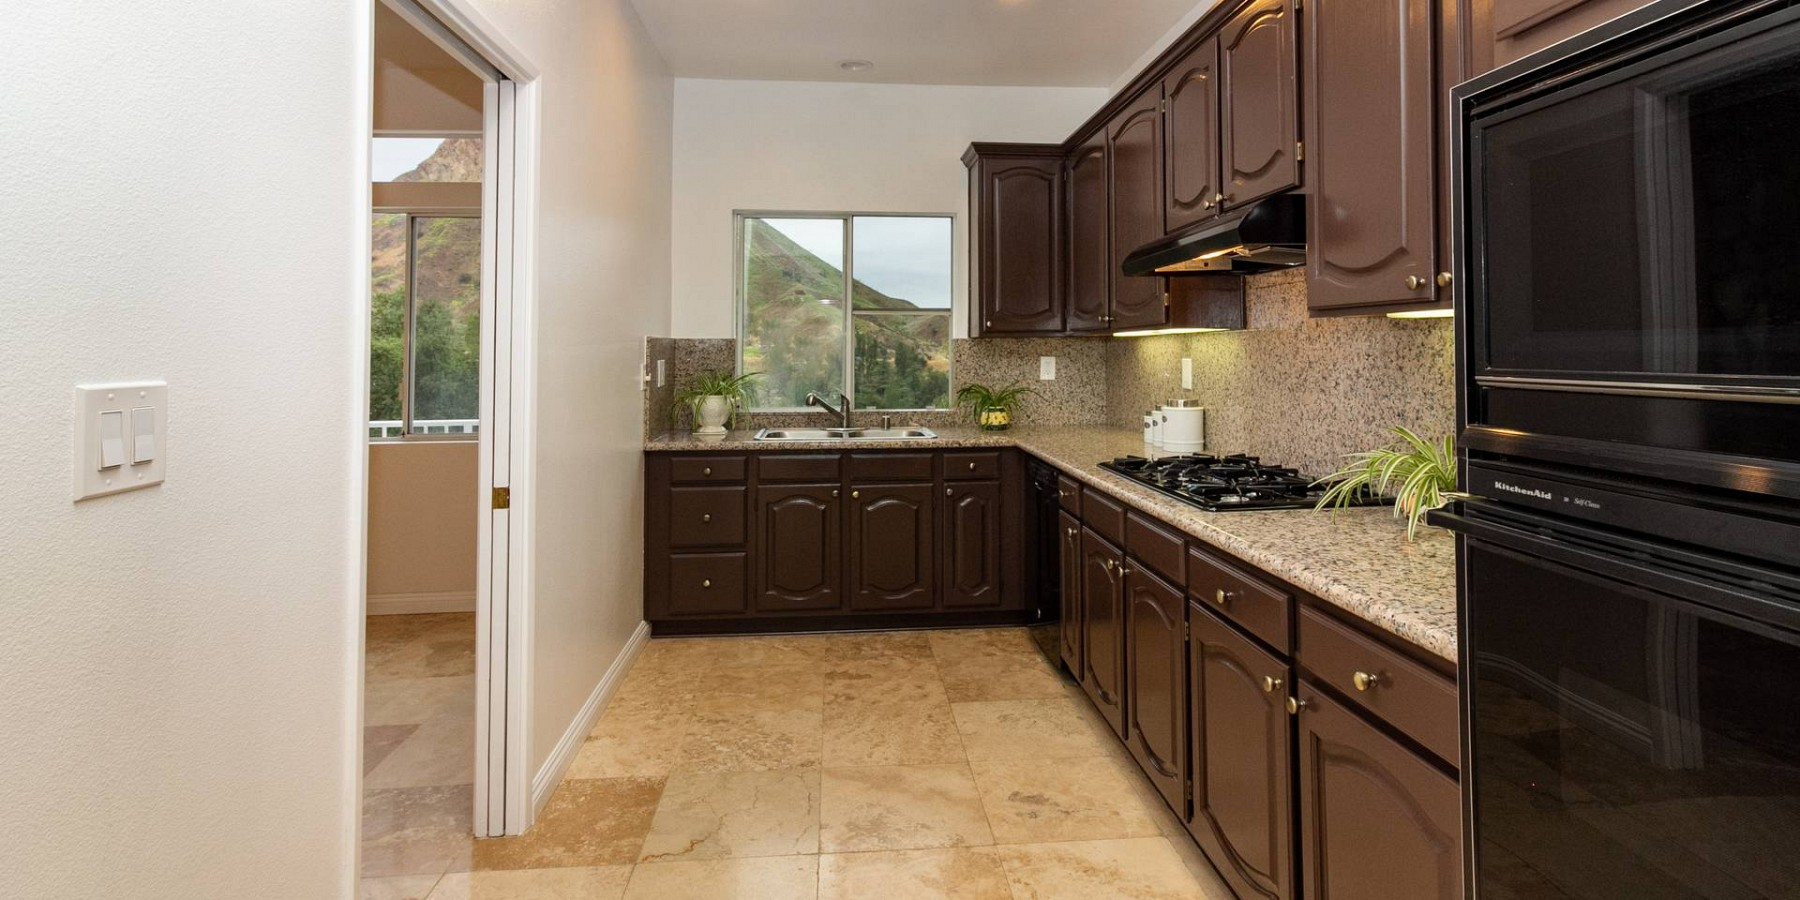 1988 Lookout Dr, Agoura Hills, CA 91301